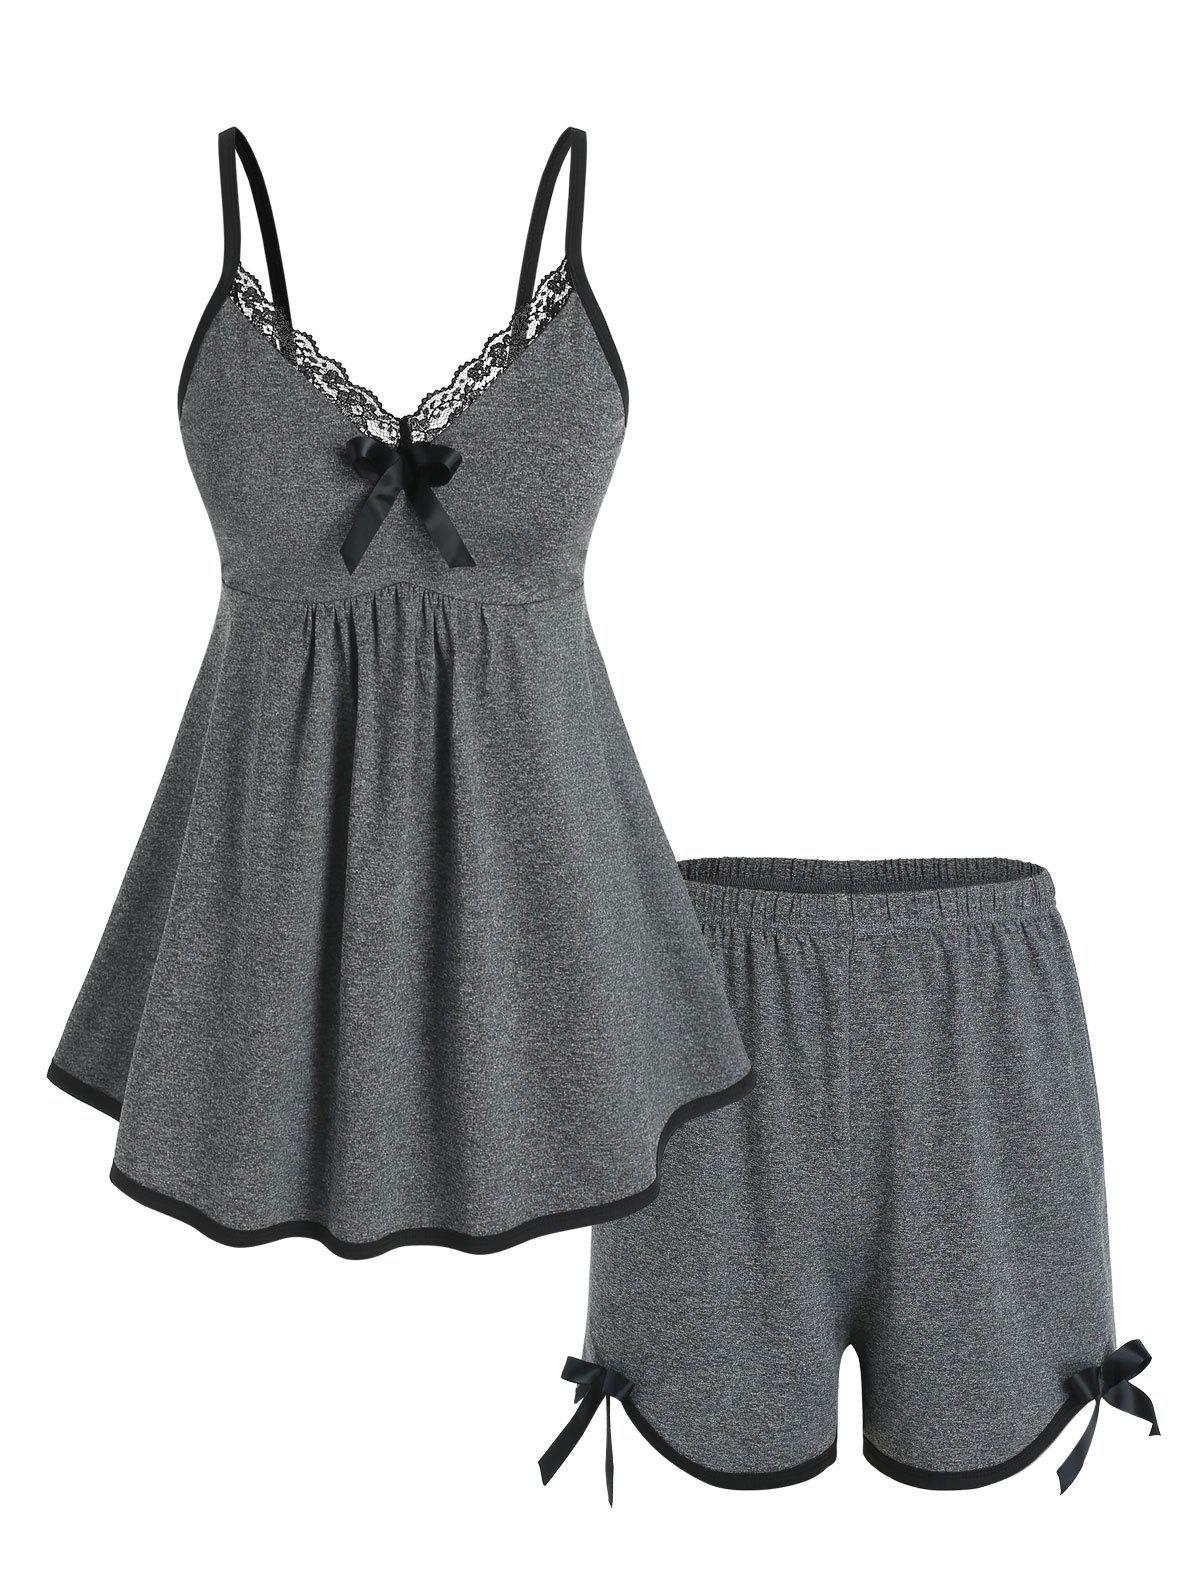 Plus Size Lace Trim Piping Pajama Cami Top and Shorts Set - DARK GRAY L